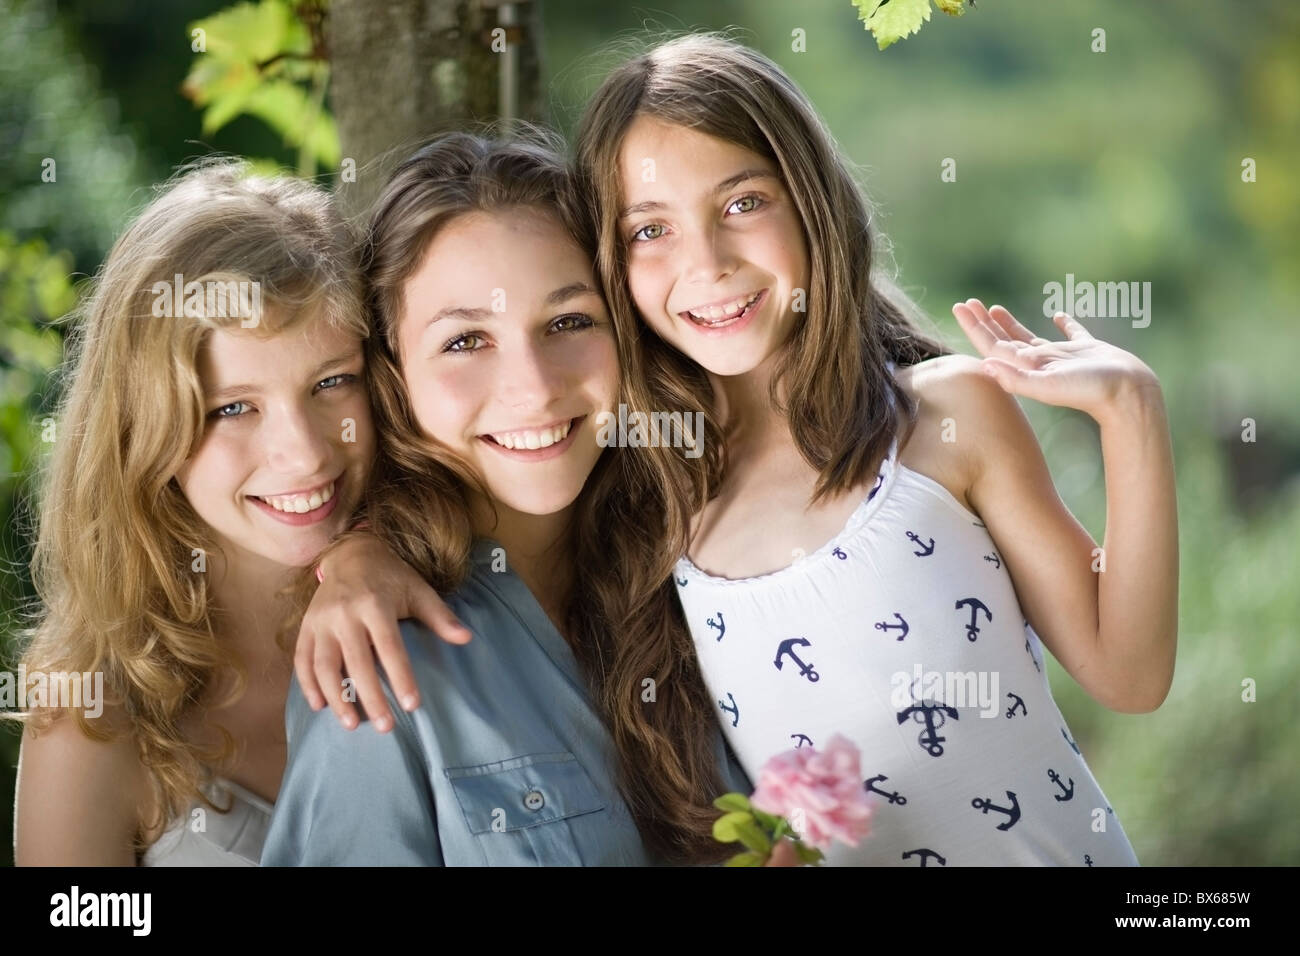 Three girls hugging each other Stock Photo